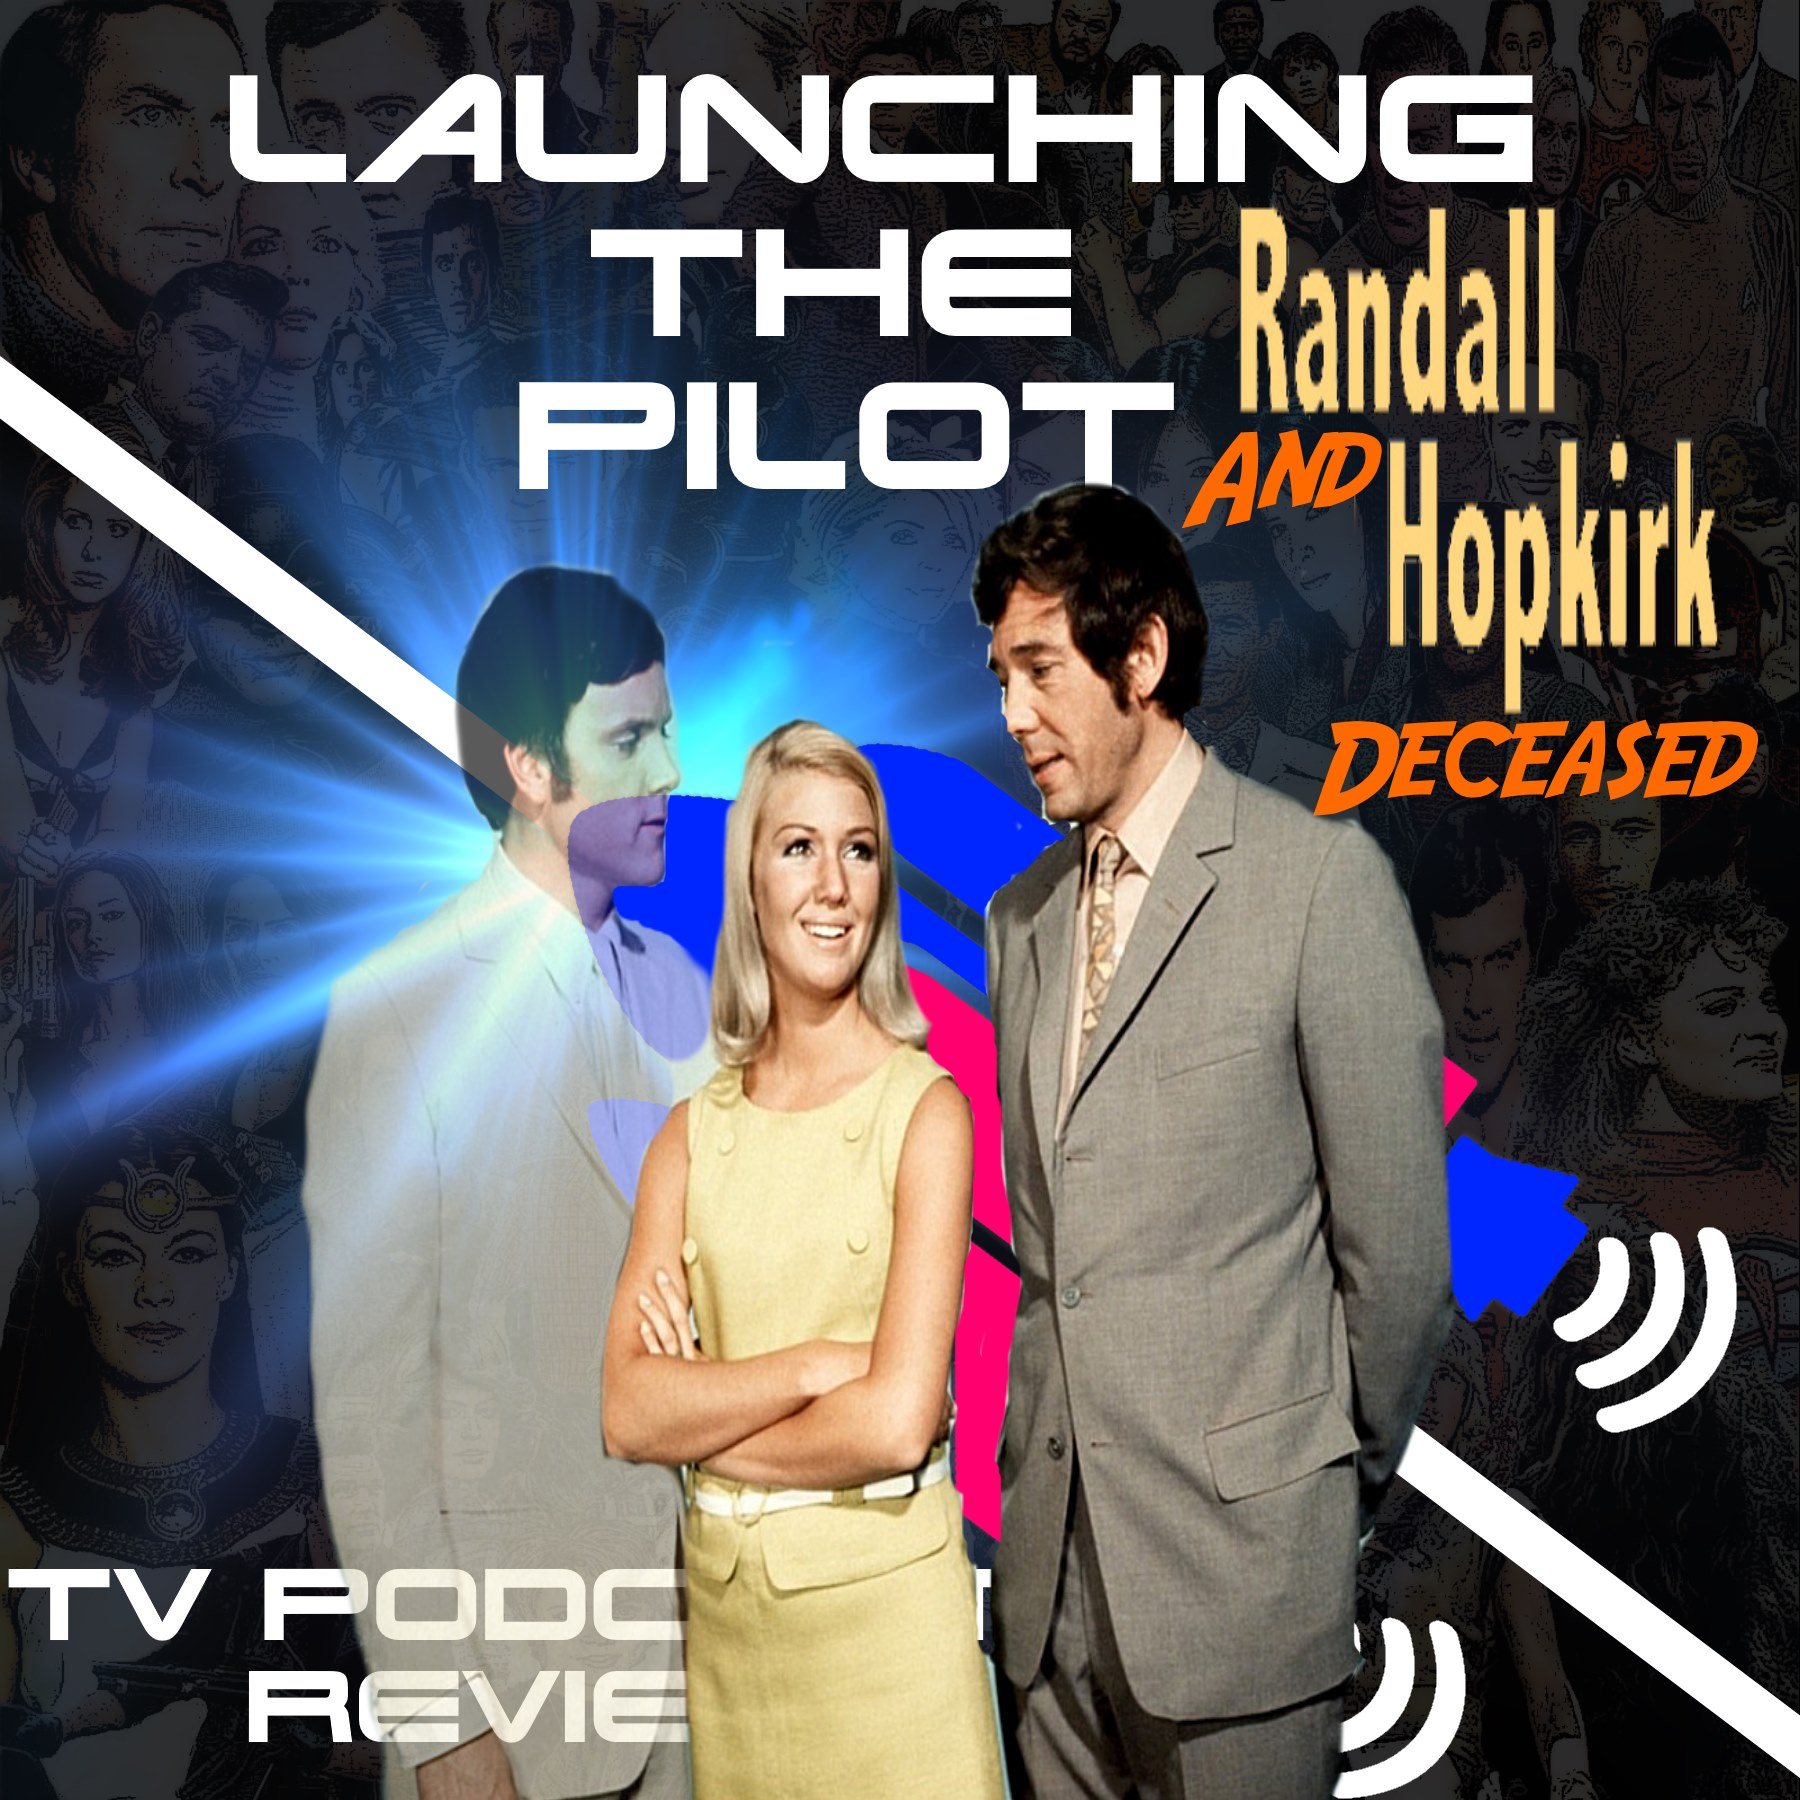 Randall And Hopkirk (deceased) (1969)